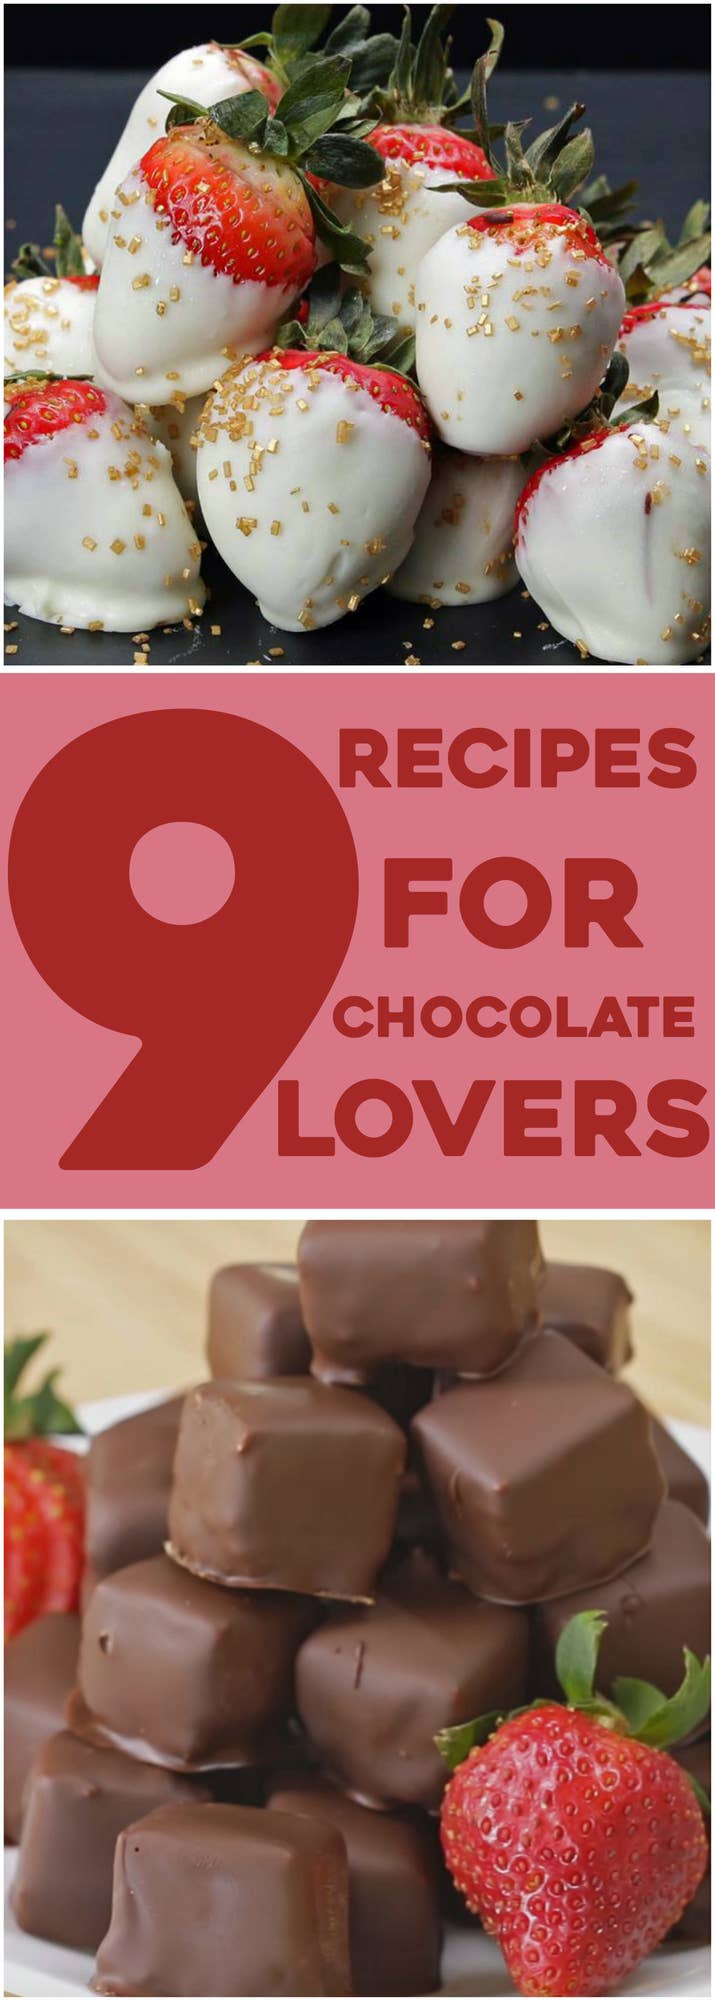 Here Are 9 Chocolate Recipes That Will Bring Joy To Your Life